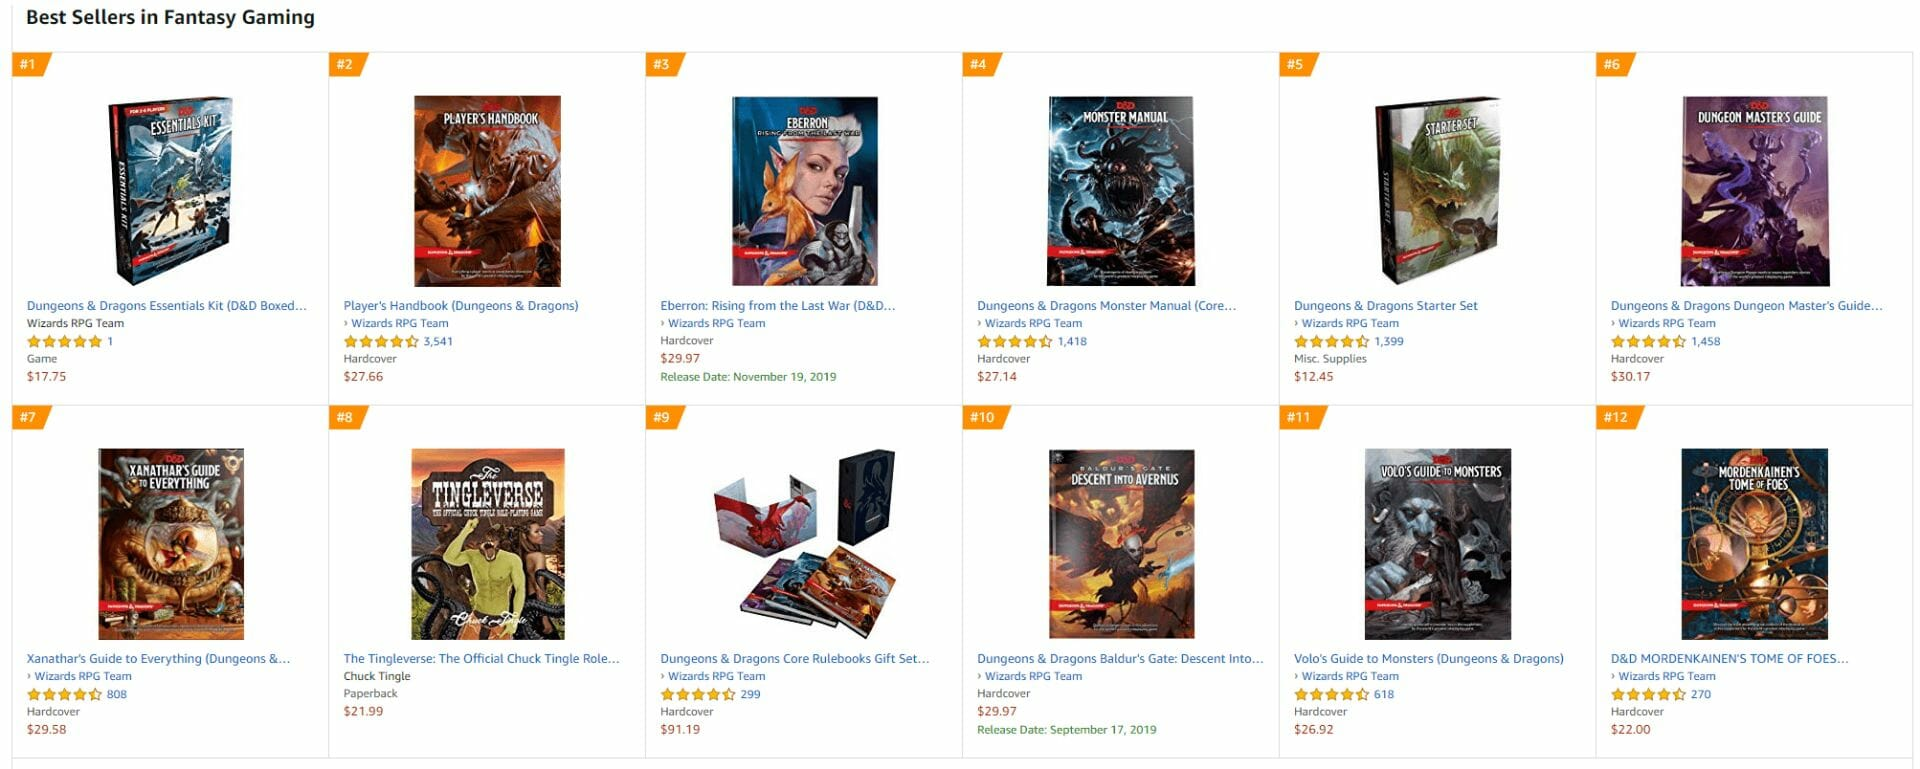 The Tingleverse RPG as Amazon's 8th best selling fantasy game.